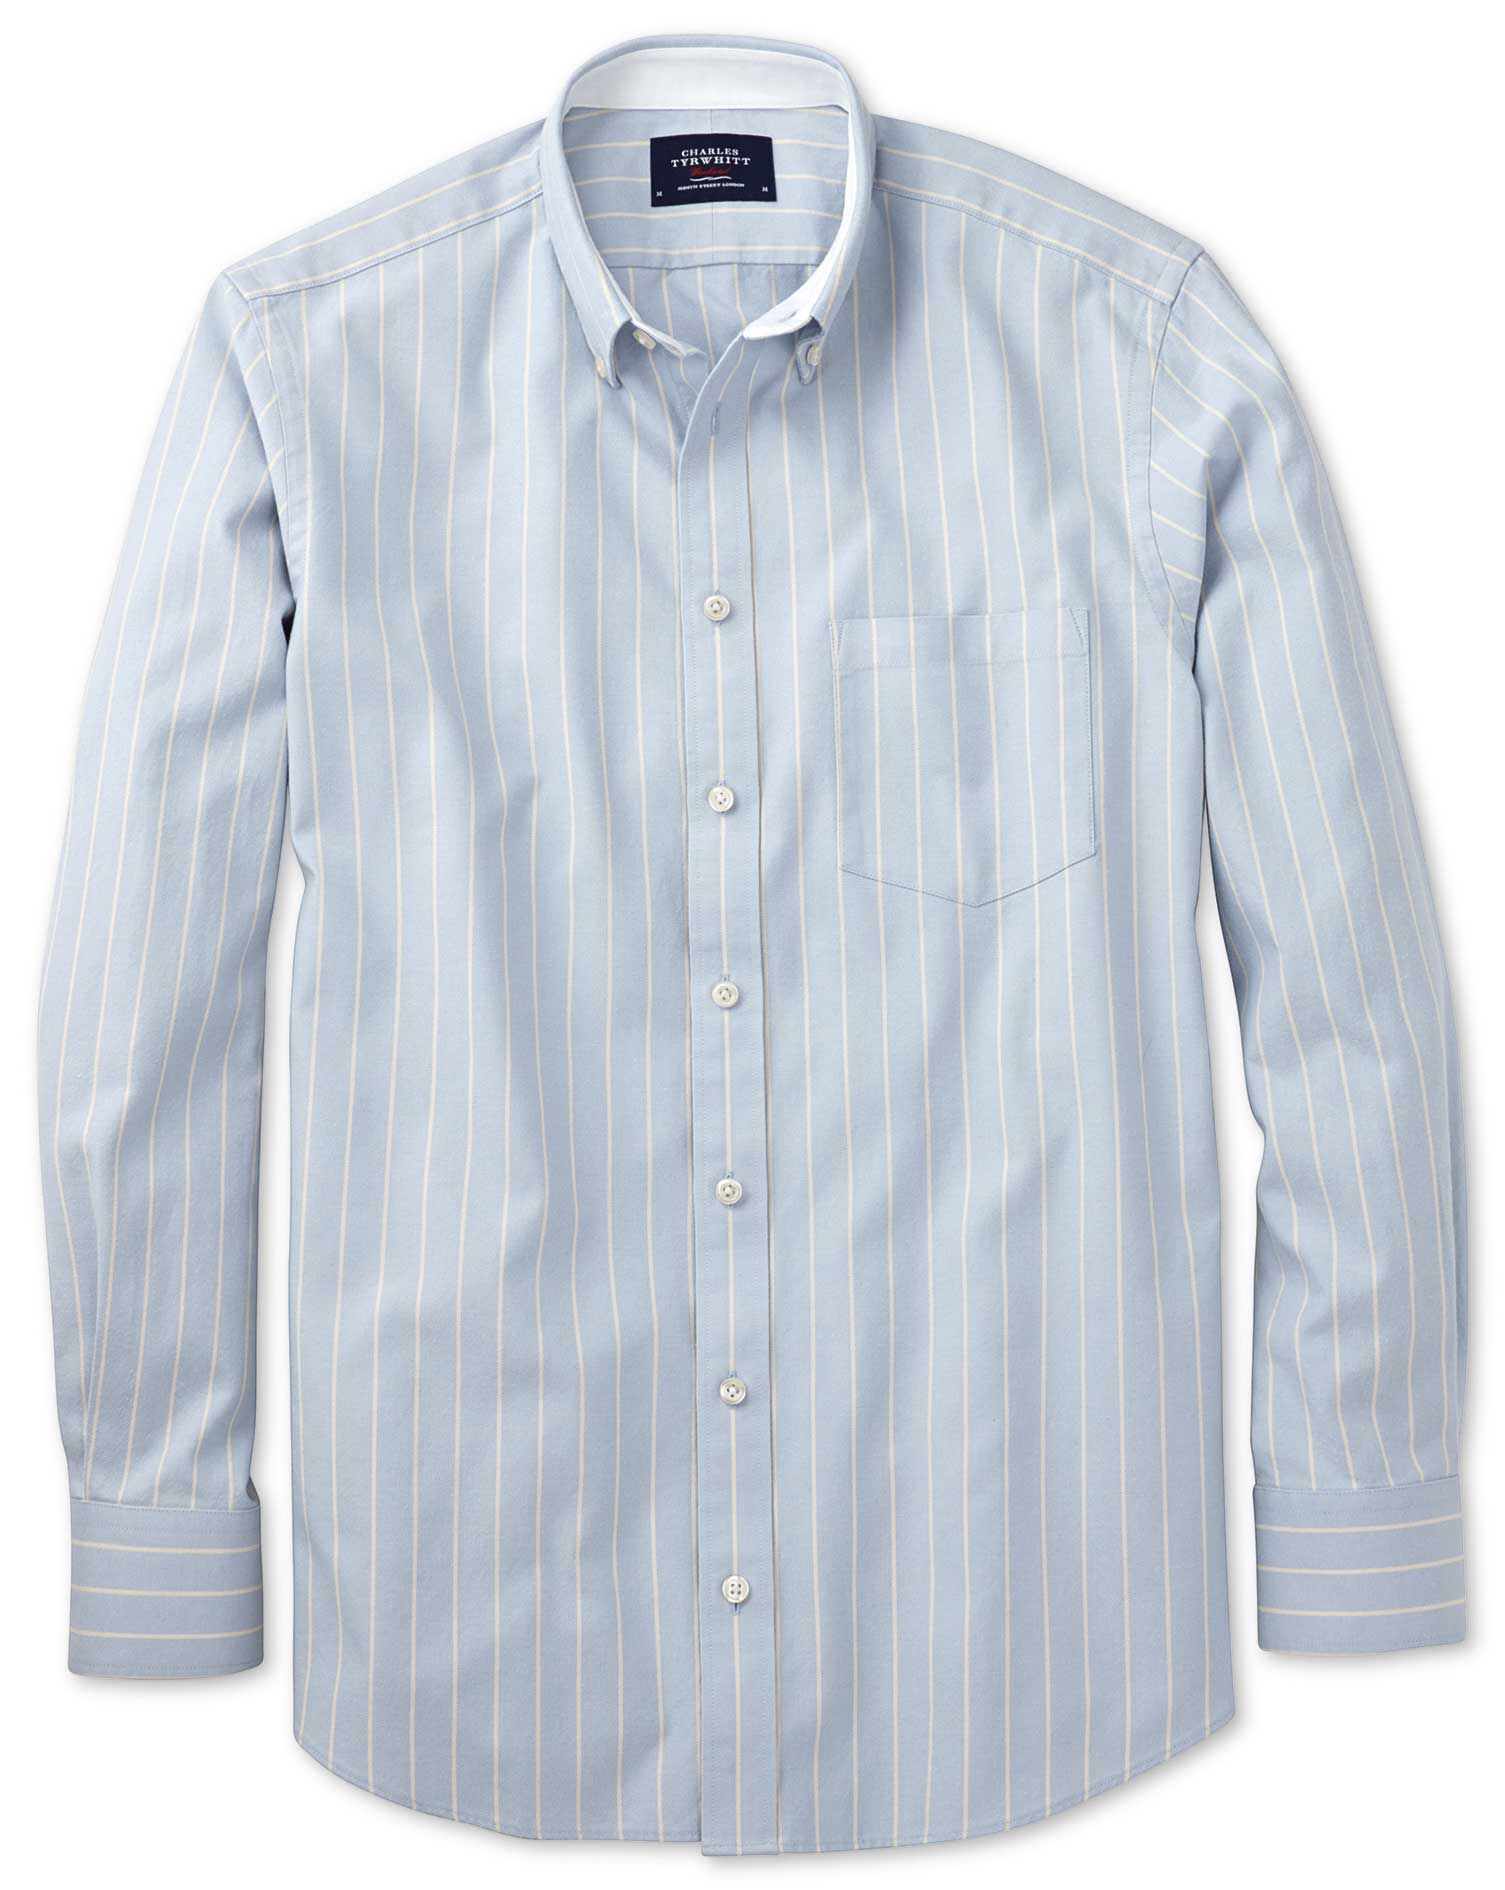 Extra Slim Fit Sky Blue Stripe Washed Oxford Cotton Shirt Single Cuff Size Large by Charles Tyrwhitt